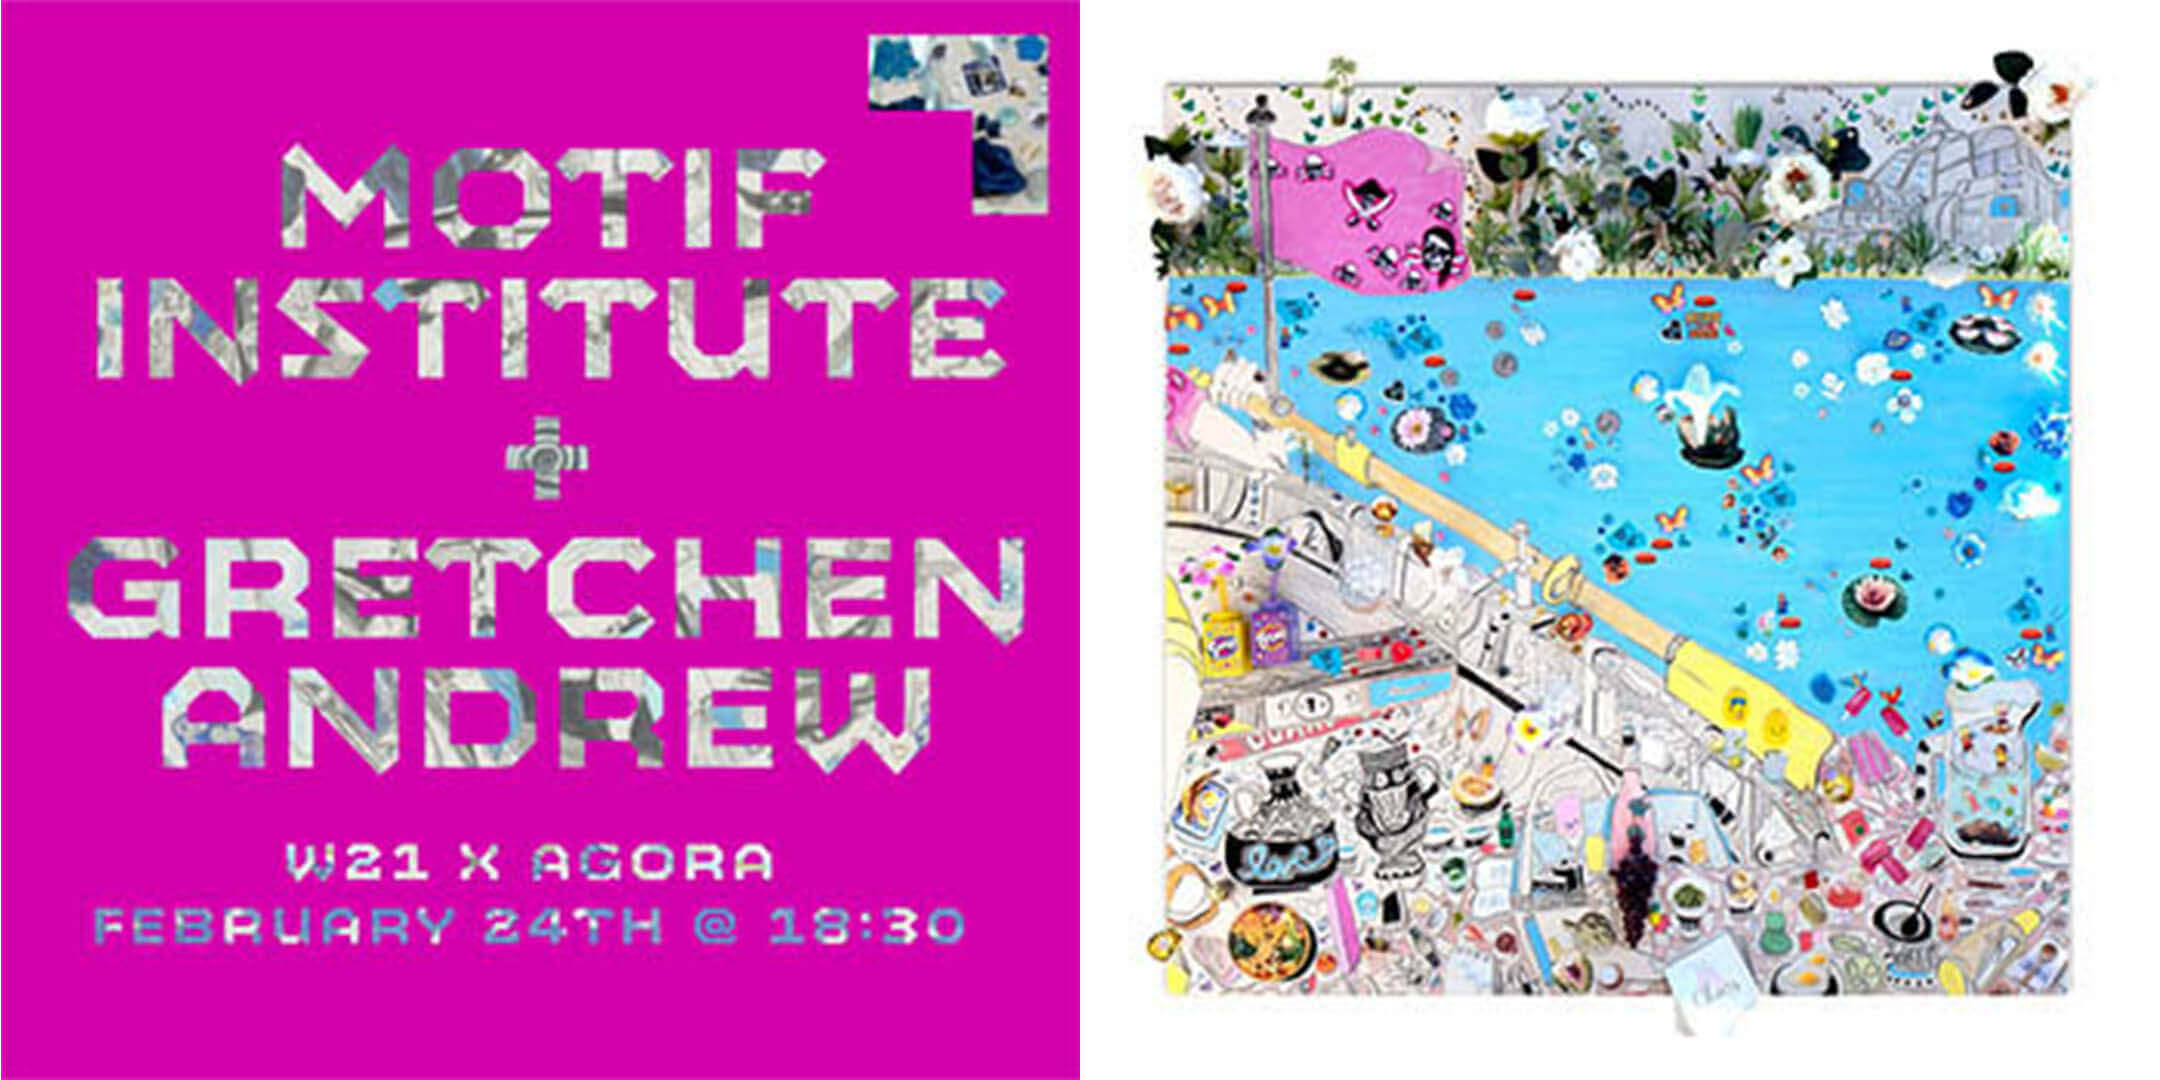 21.02.24: W21 Talk: Motif Institute _ Gretchen Andrew for Agora Digital Art